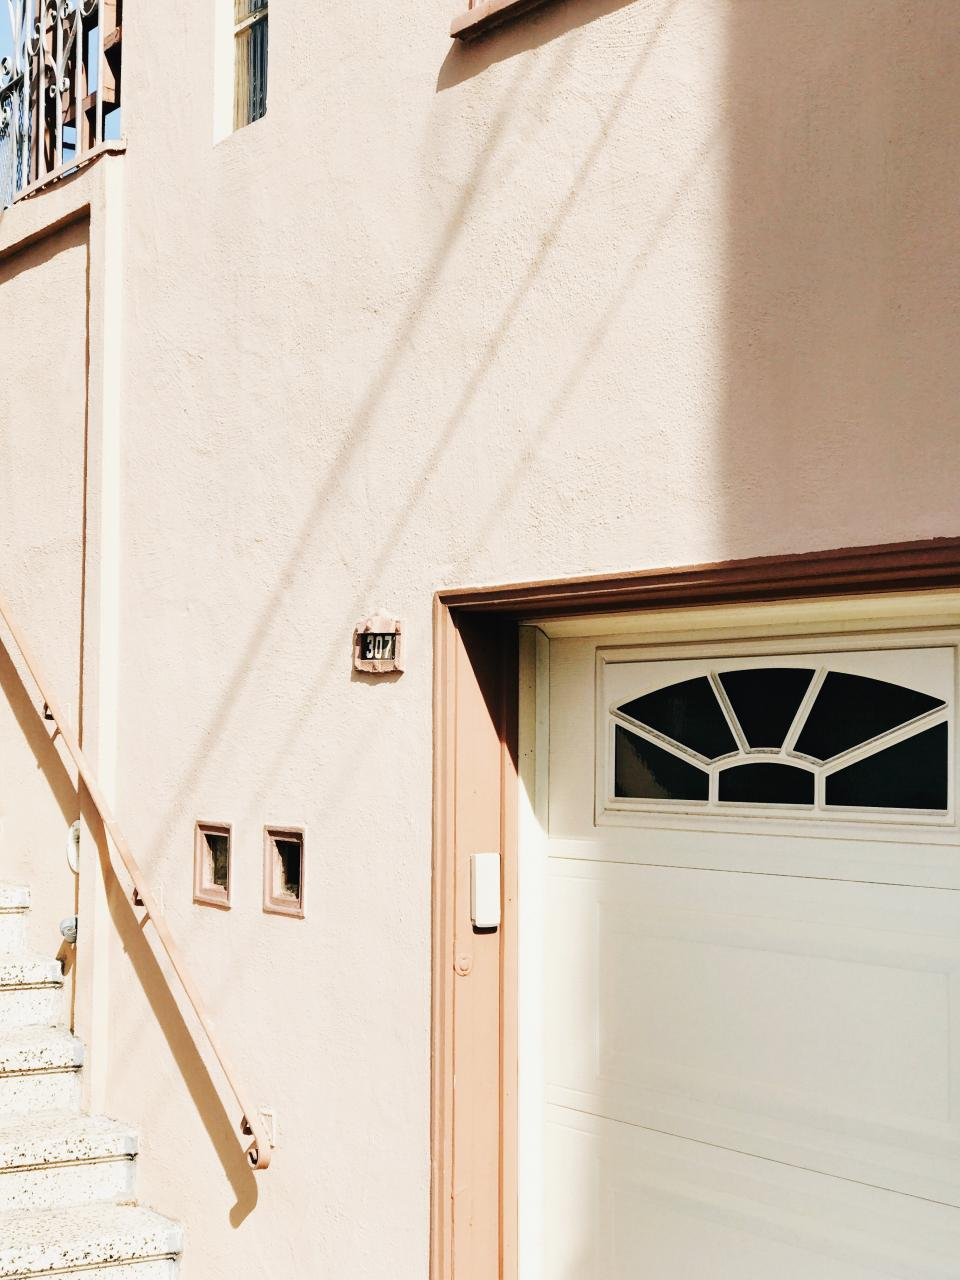 architecture house home stairs door peach number